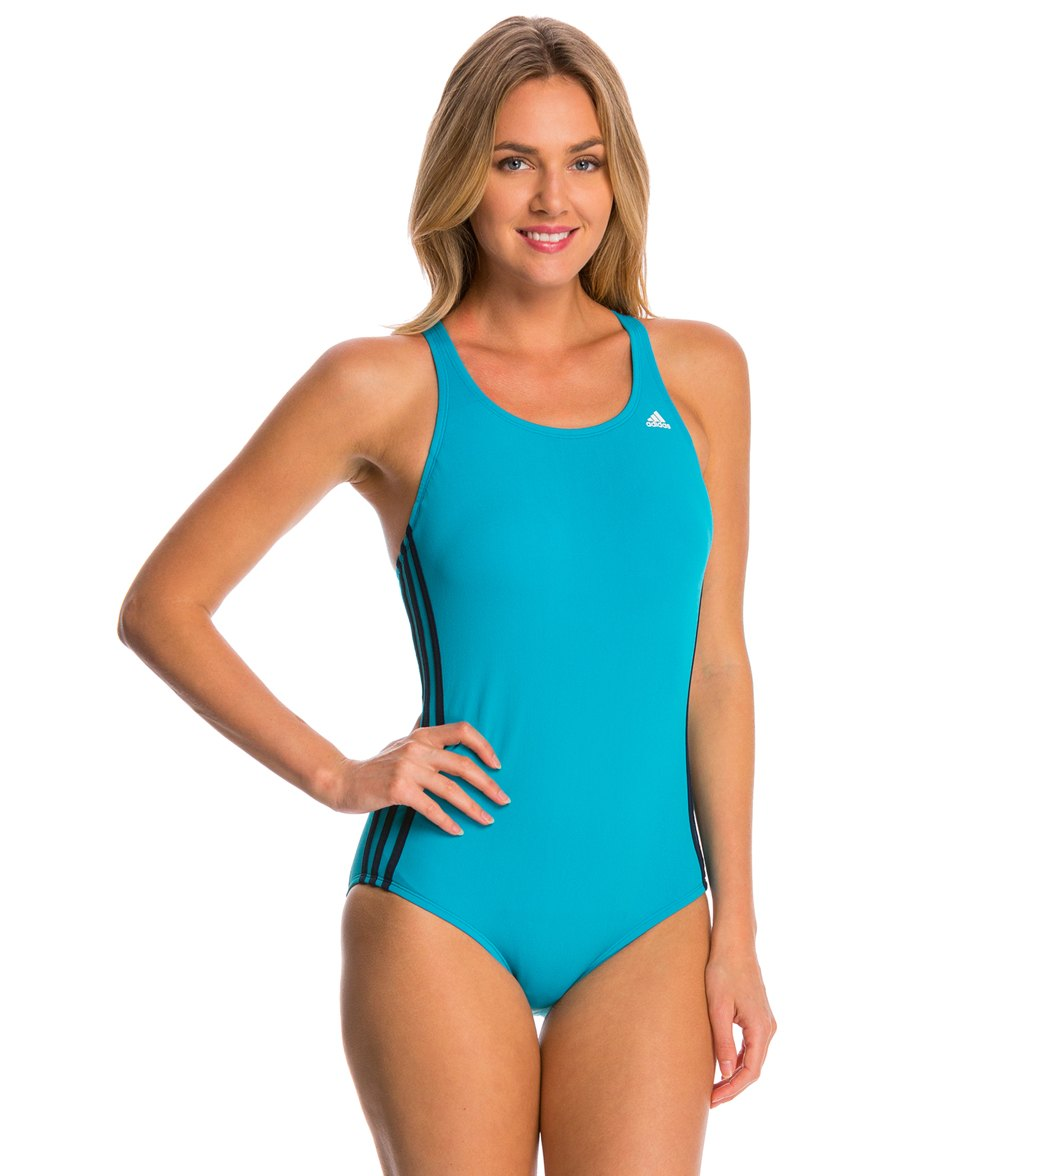 quAdidas Women's 3-Stripe One Piece Swimsuit at SwimOutlet.com - Free  Shipping